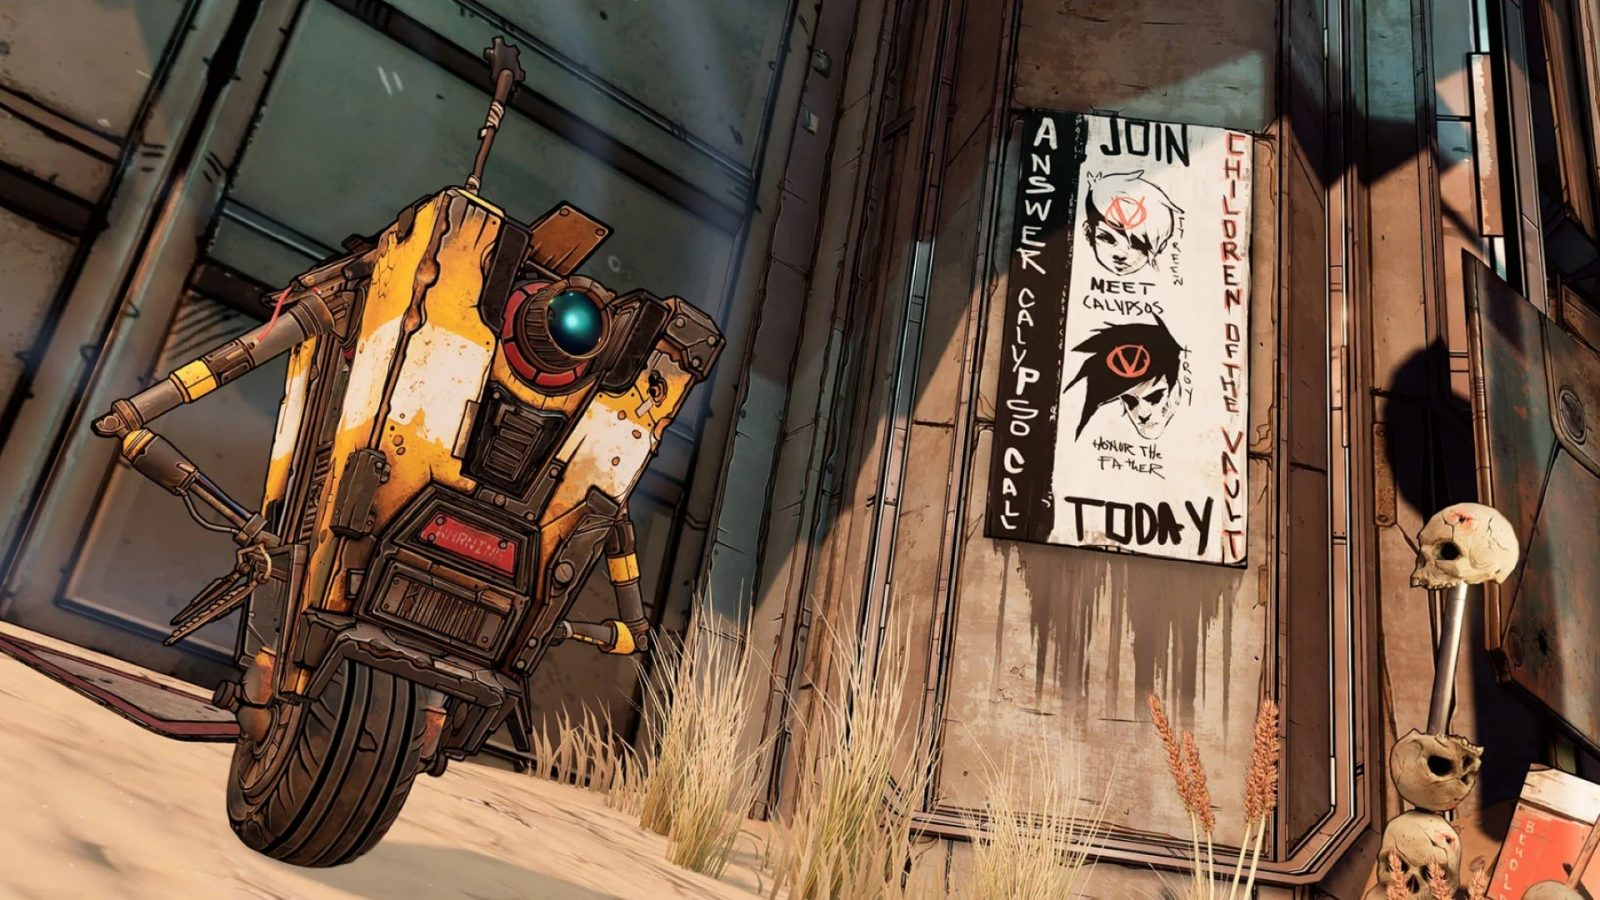 Borderlands 3 Unplayable on PC For DirectX 12 Users